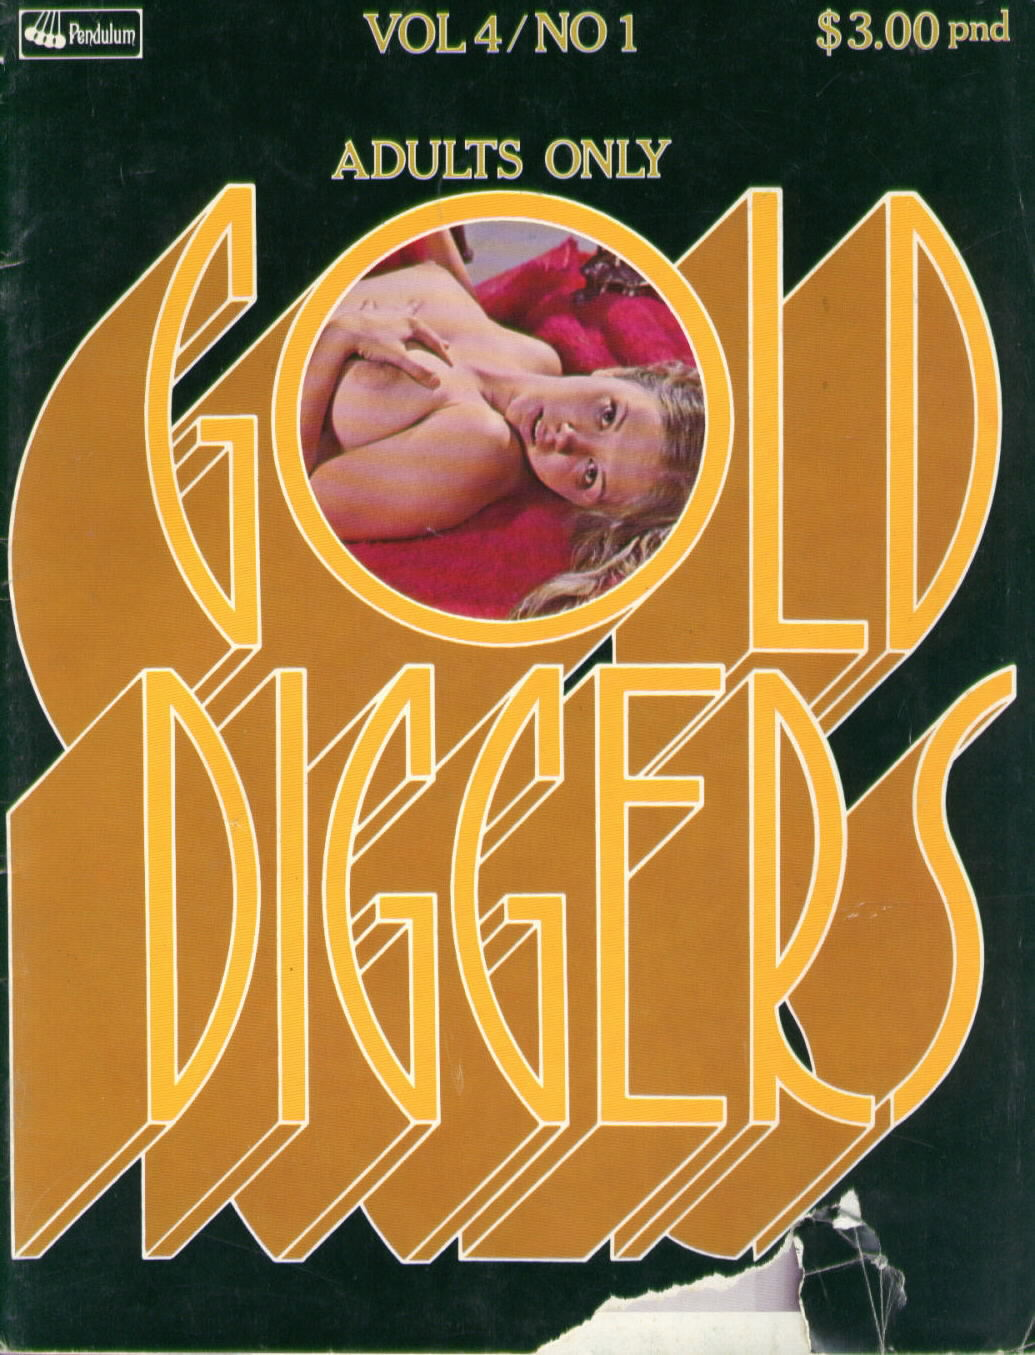 GOLD DIGGERS 4.1 (1972) including Edward D. Wood, Jr.